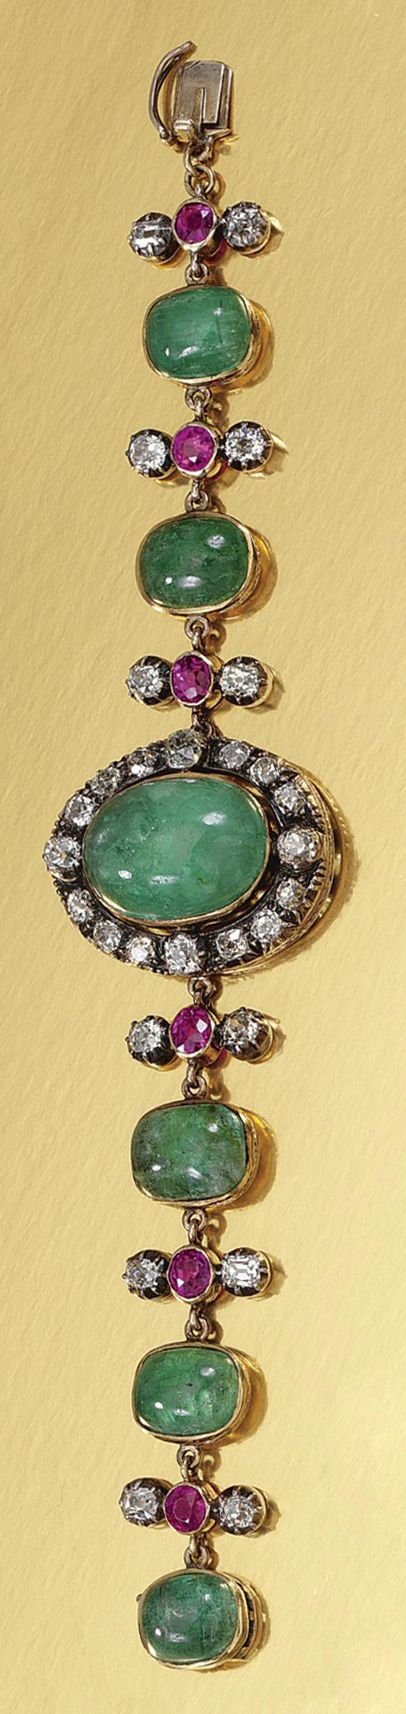 MERALD, RUBY AND DIAMOND BRACELET, LATE 19TH CENTURY.  The central plaque set with an oval cabochon emerald within a surround of circular-cut diamonds, to links collet-set with cabochon emeralds alternating with circular-cut rubies and diamonds, engraved to the reverse with Chinese characters for 'Health', 'Longevity', 'Peace' and 'Prosperity', length approximately 175mm.